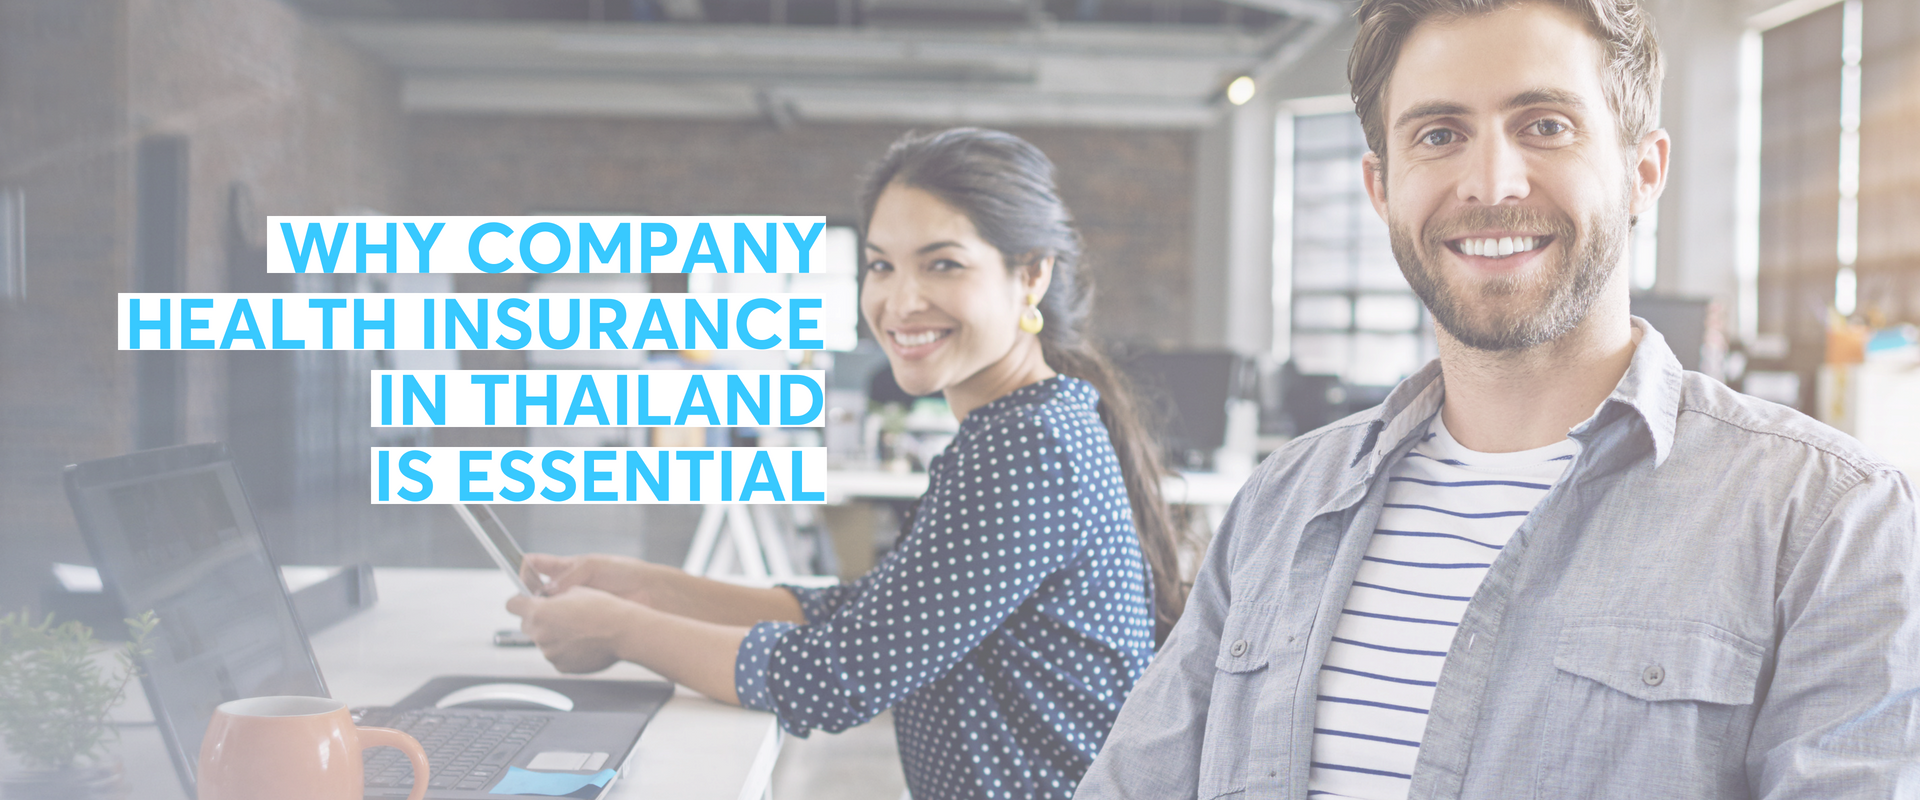 Why Company Health Insurance in Thailand is Essential